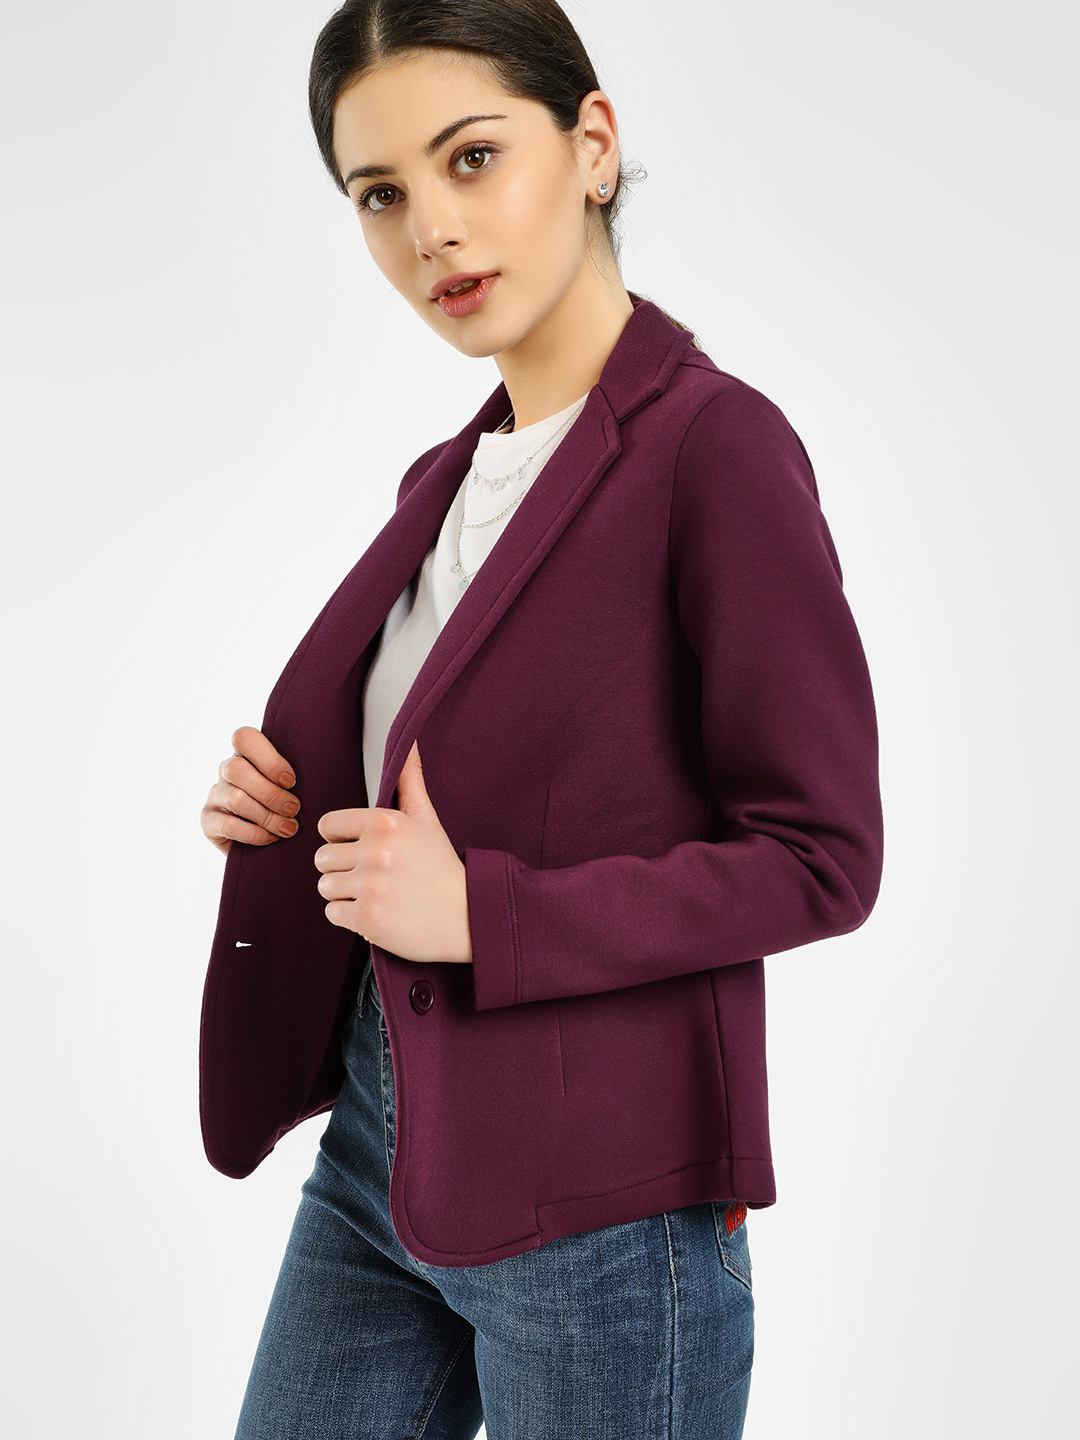 PostFold PLUM Long Sleeve Knitted Blazer 1